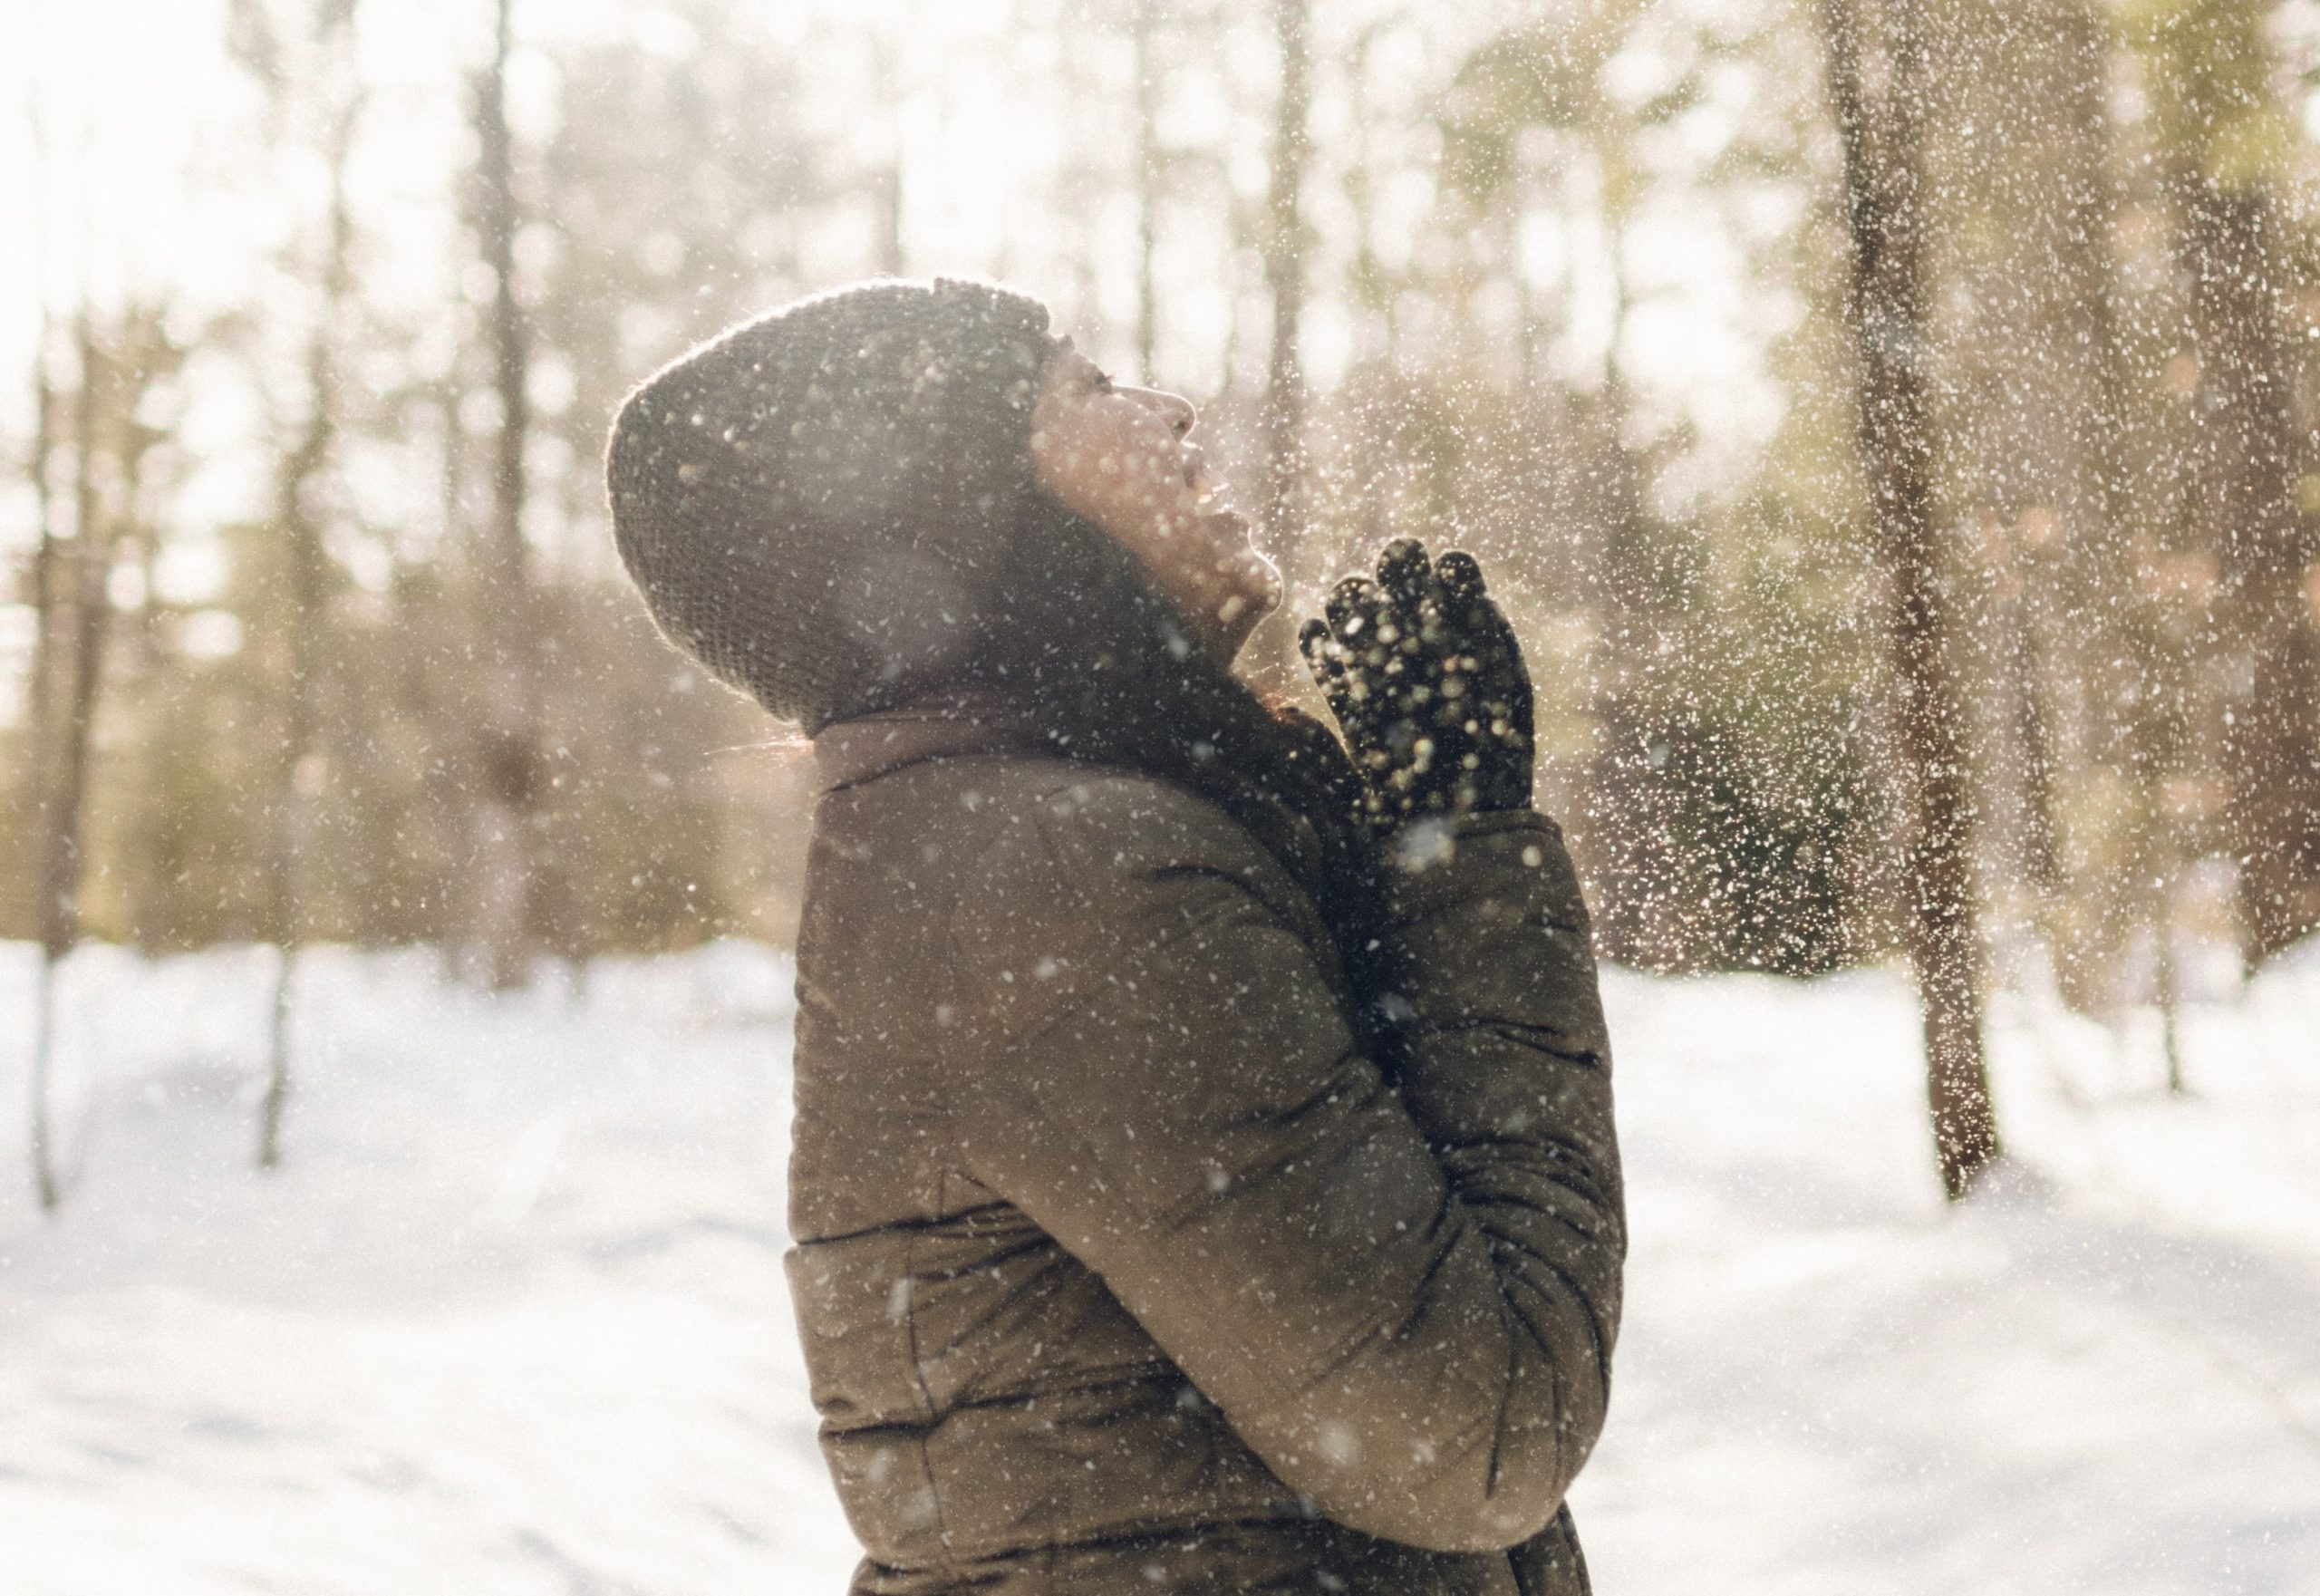 Creative Winter Photoshoot Ideas for Instagram